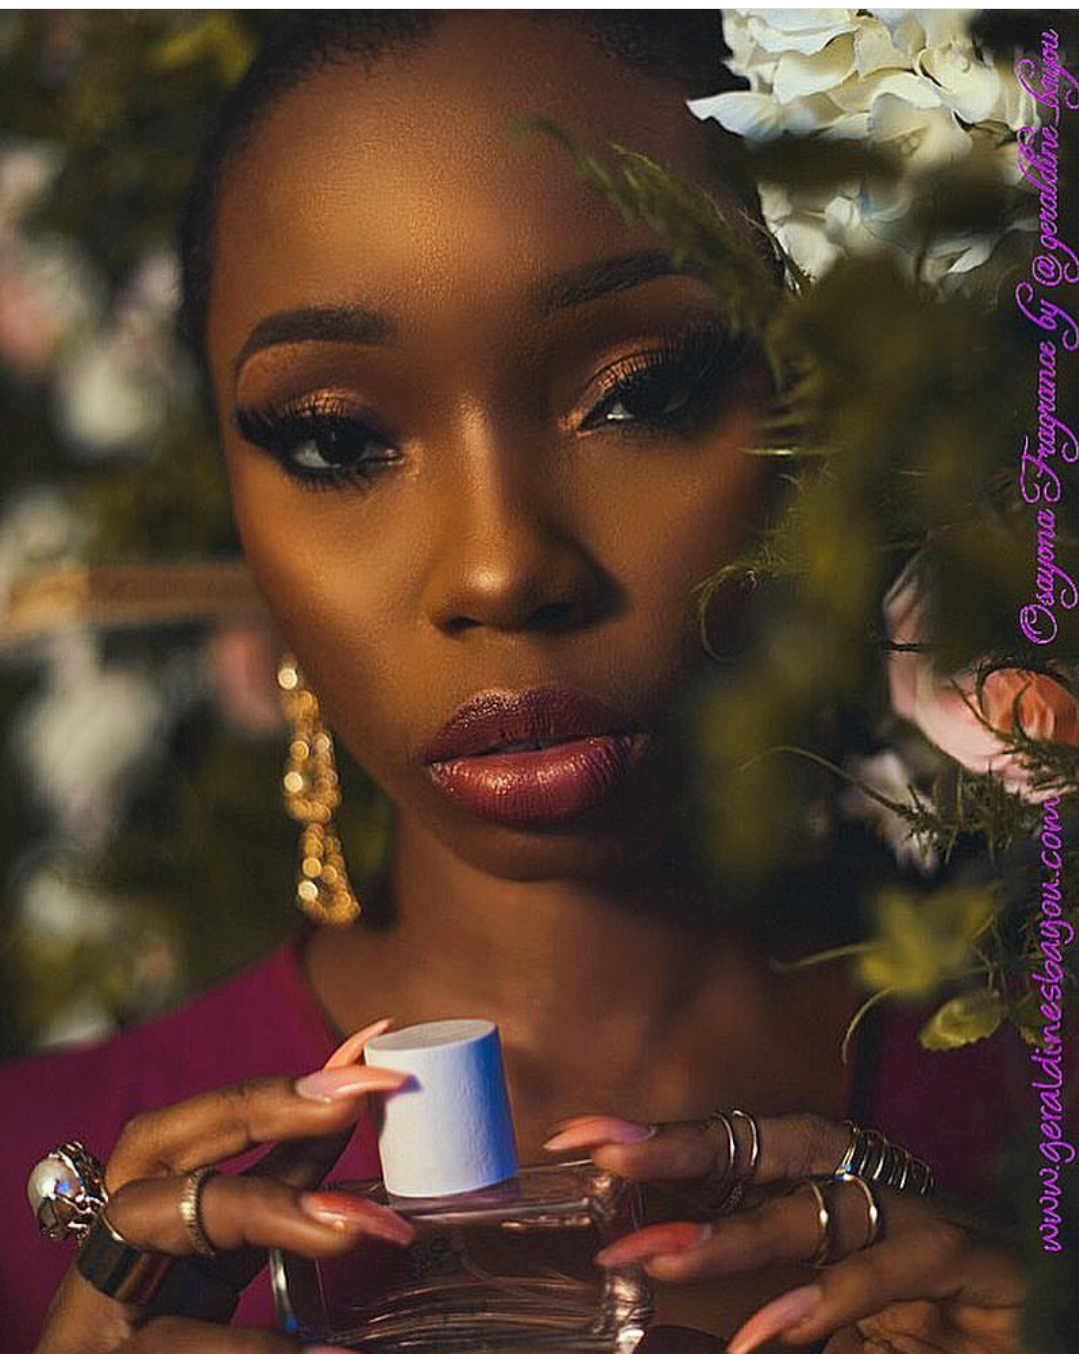 Photo of BBNaija's BamBam looks charming as she launches perfume campaign